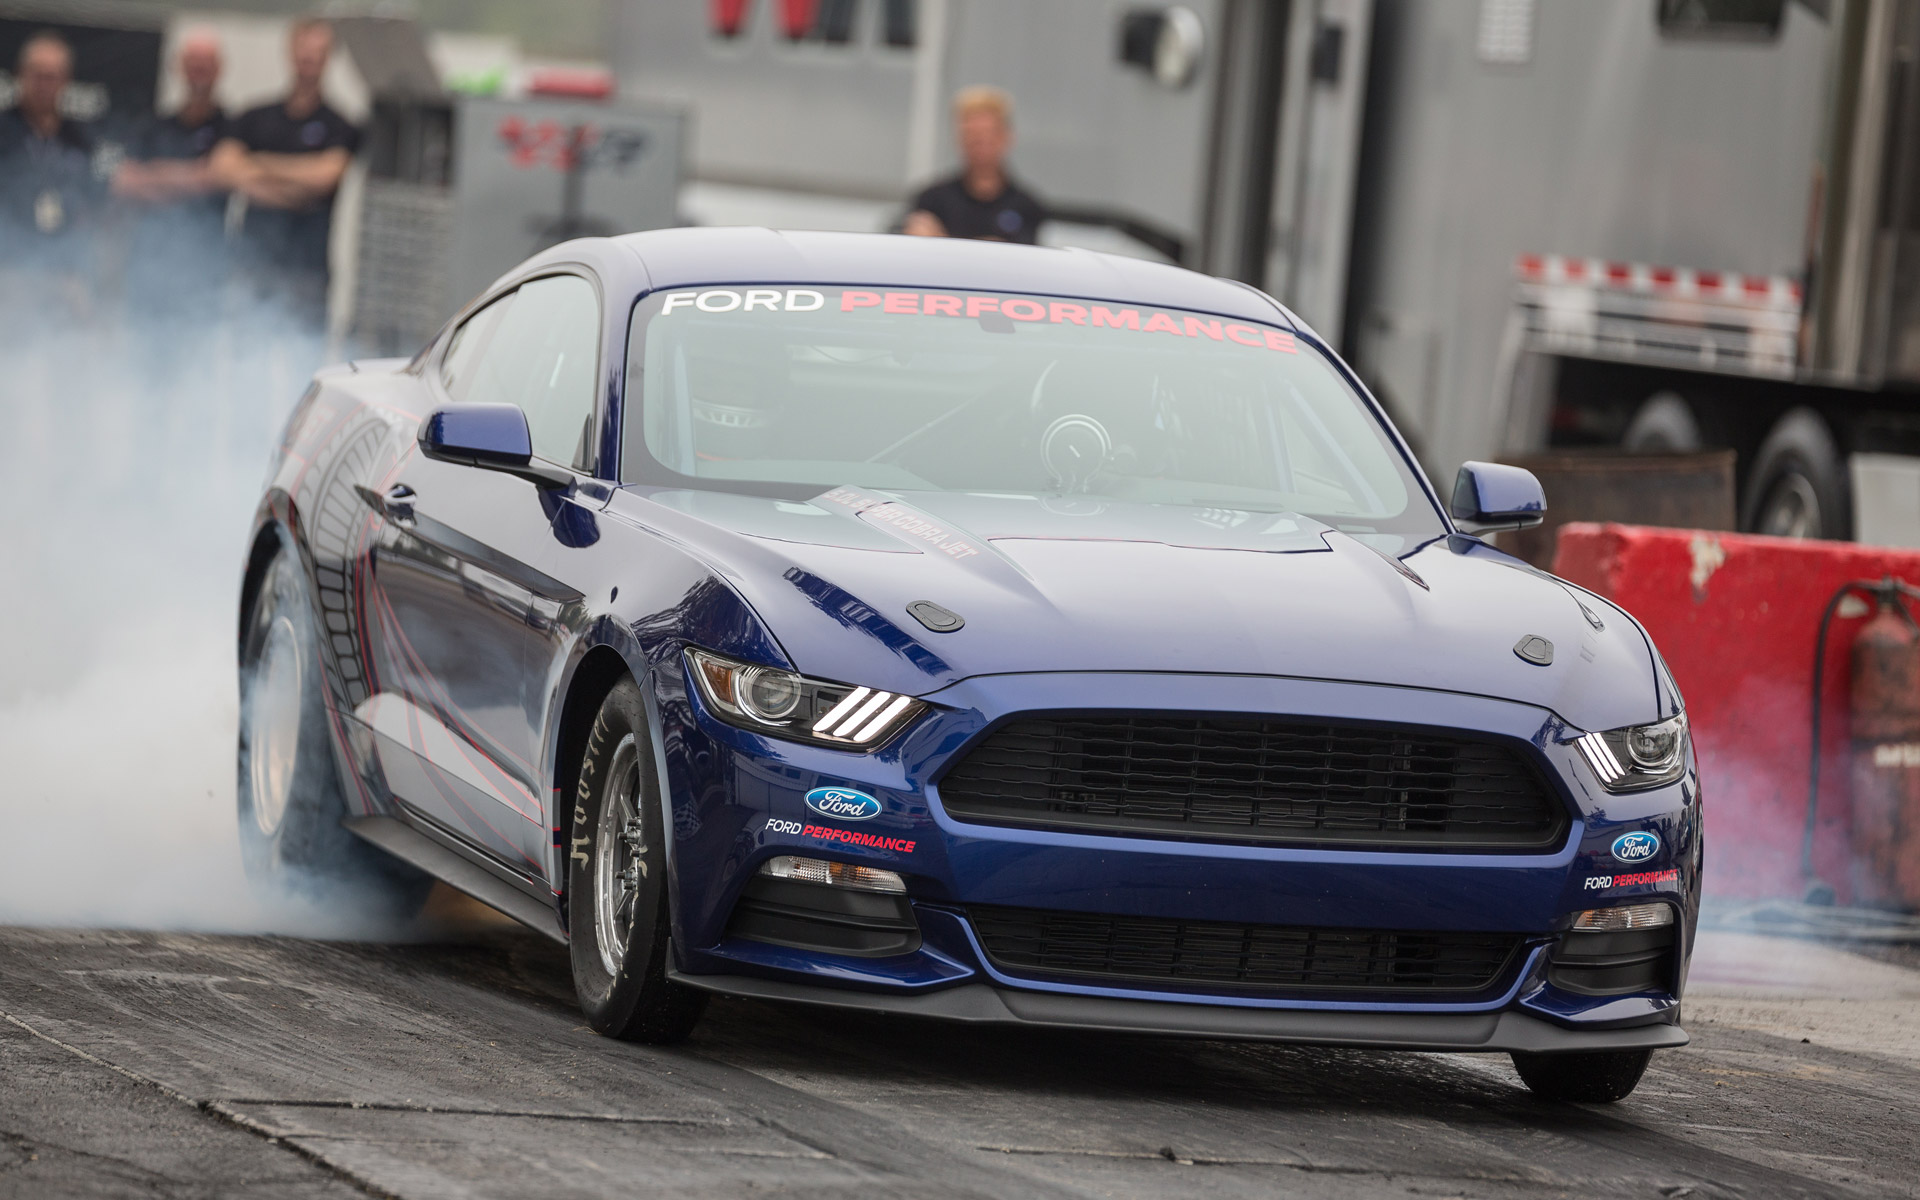 2016 Ford Mustang Cobra Jet Revealed Runs 8 0 Second Quarter Mile Video